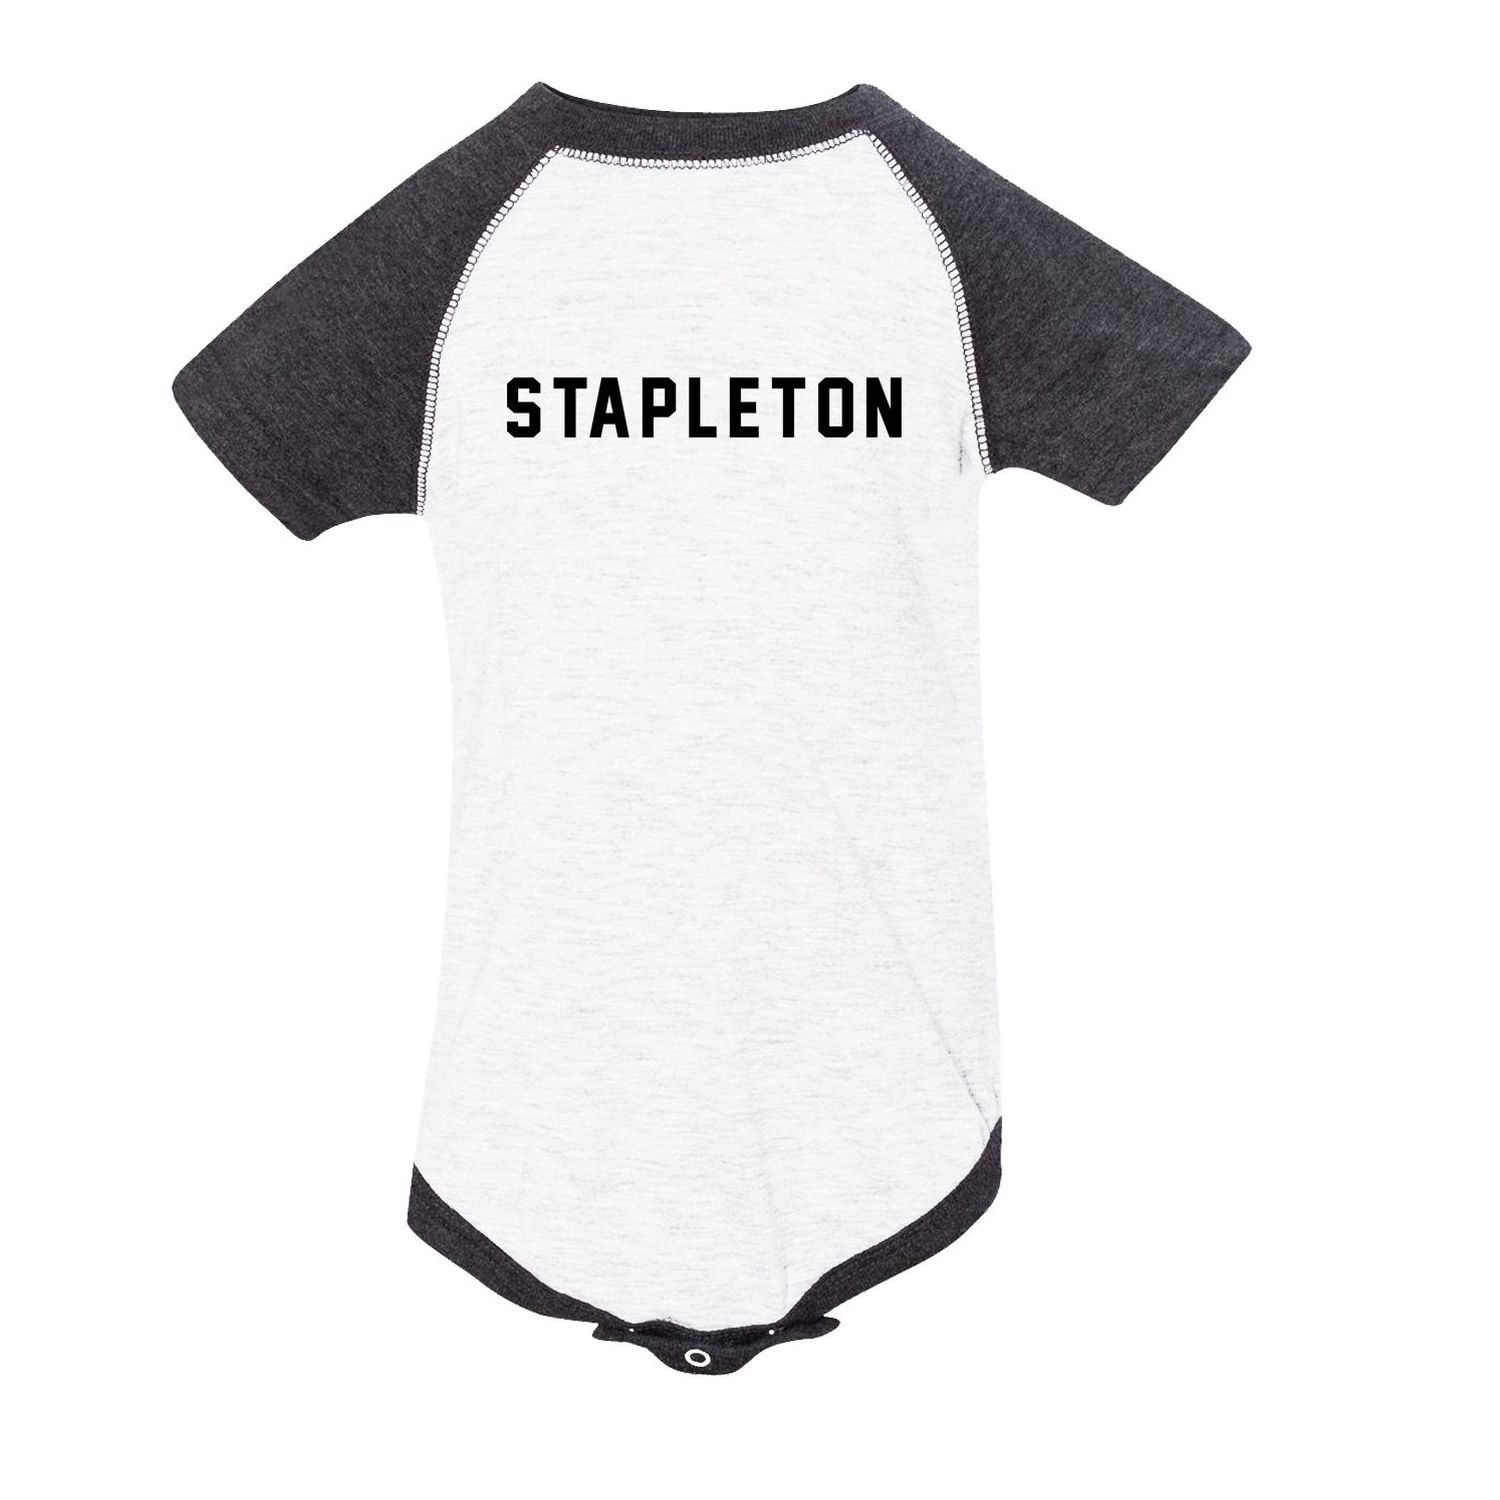 The Stapleton Raglan Onesie